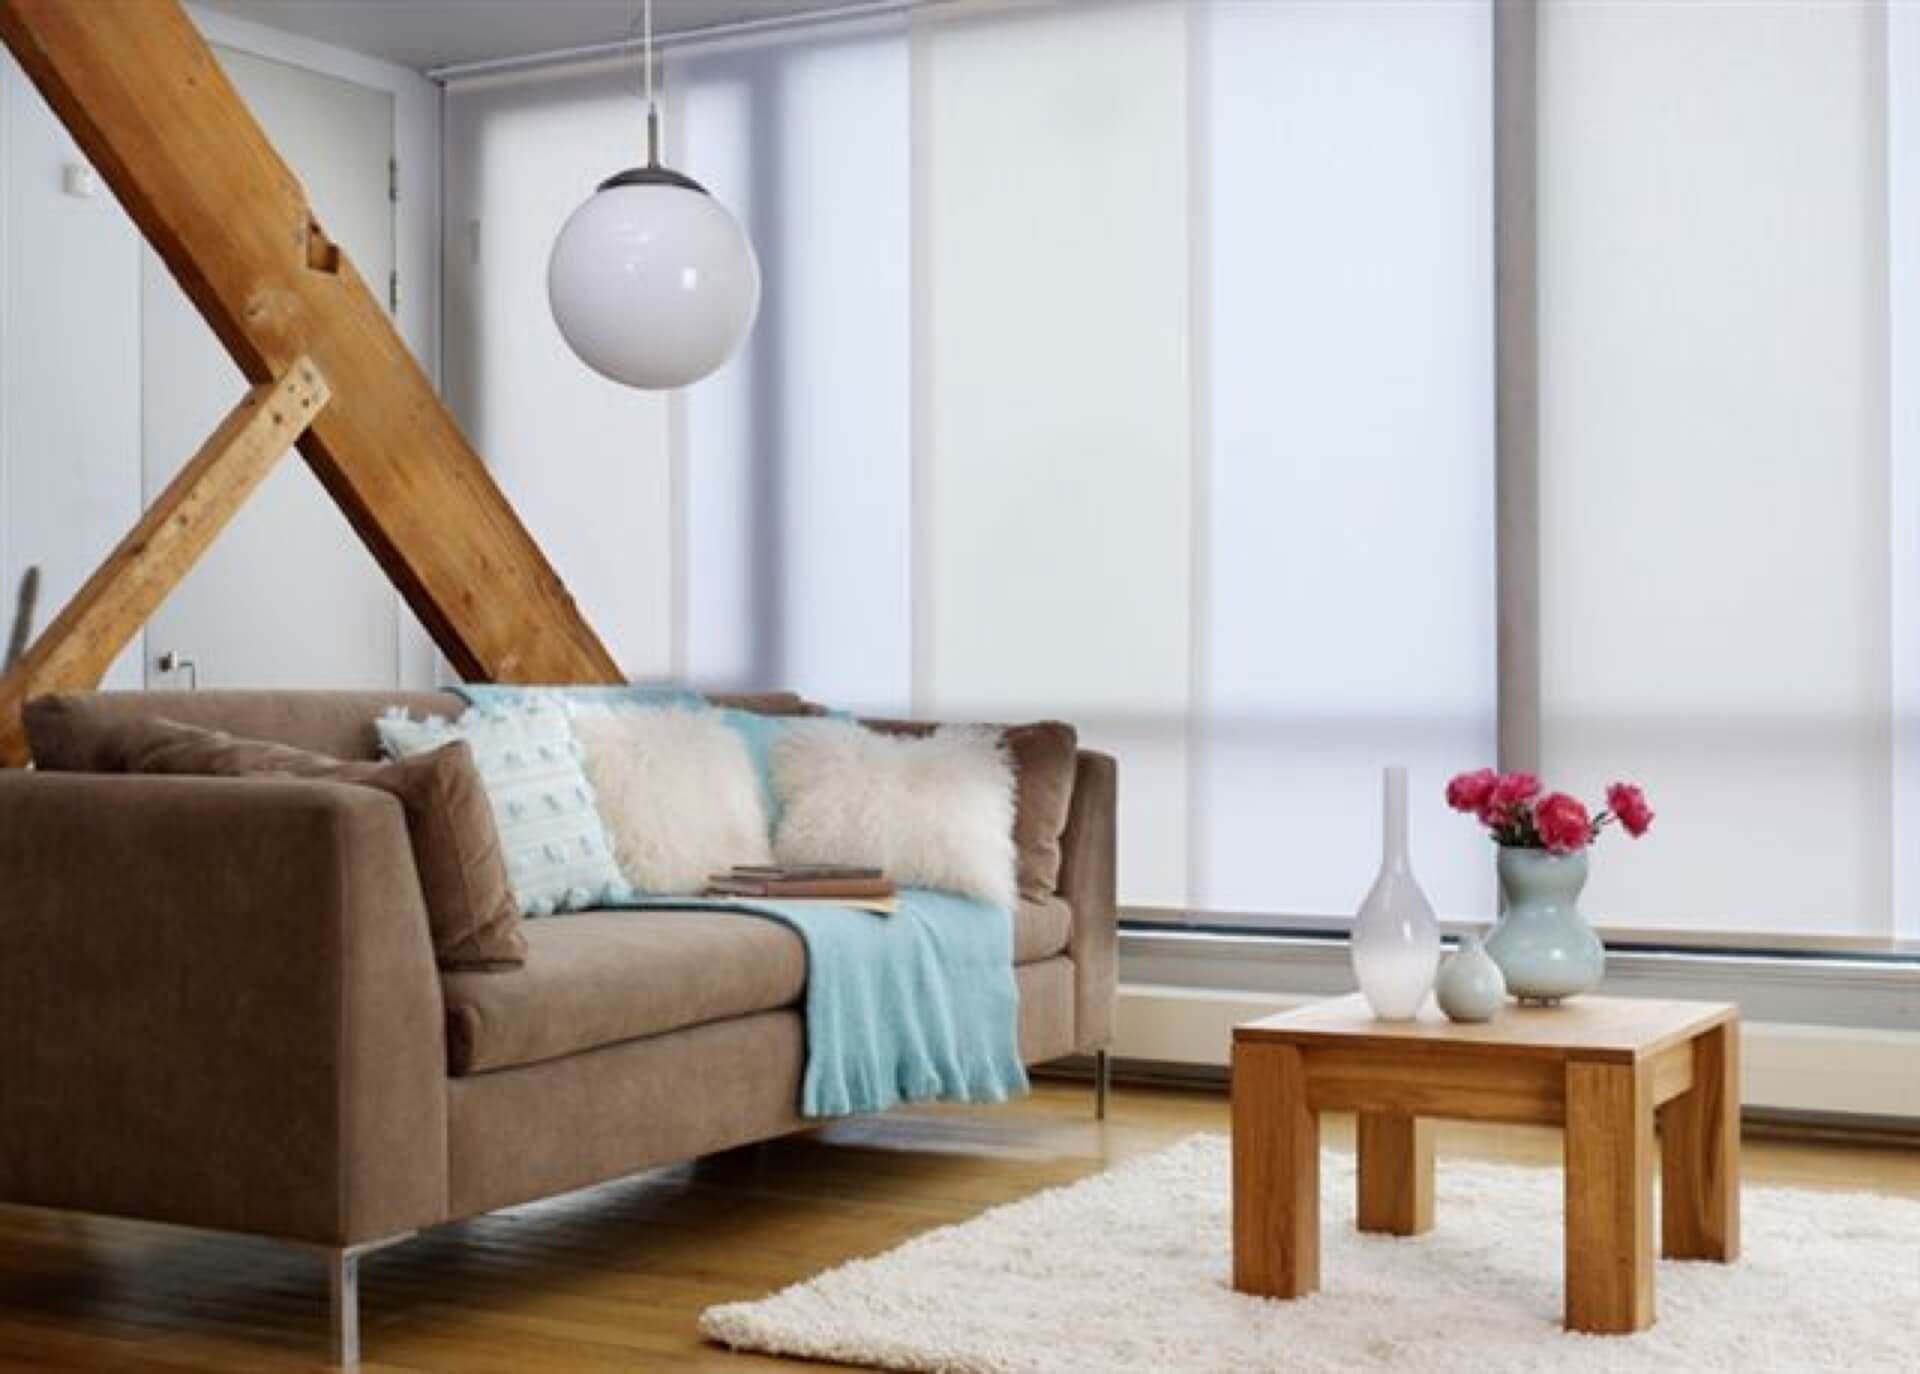 Panel Guide Blinds for Rental Properties